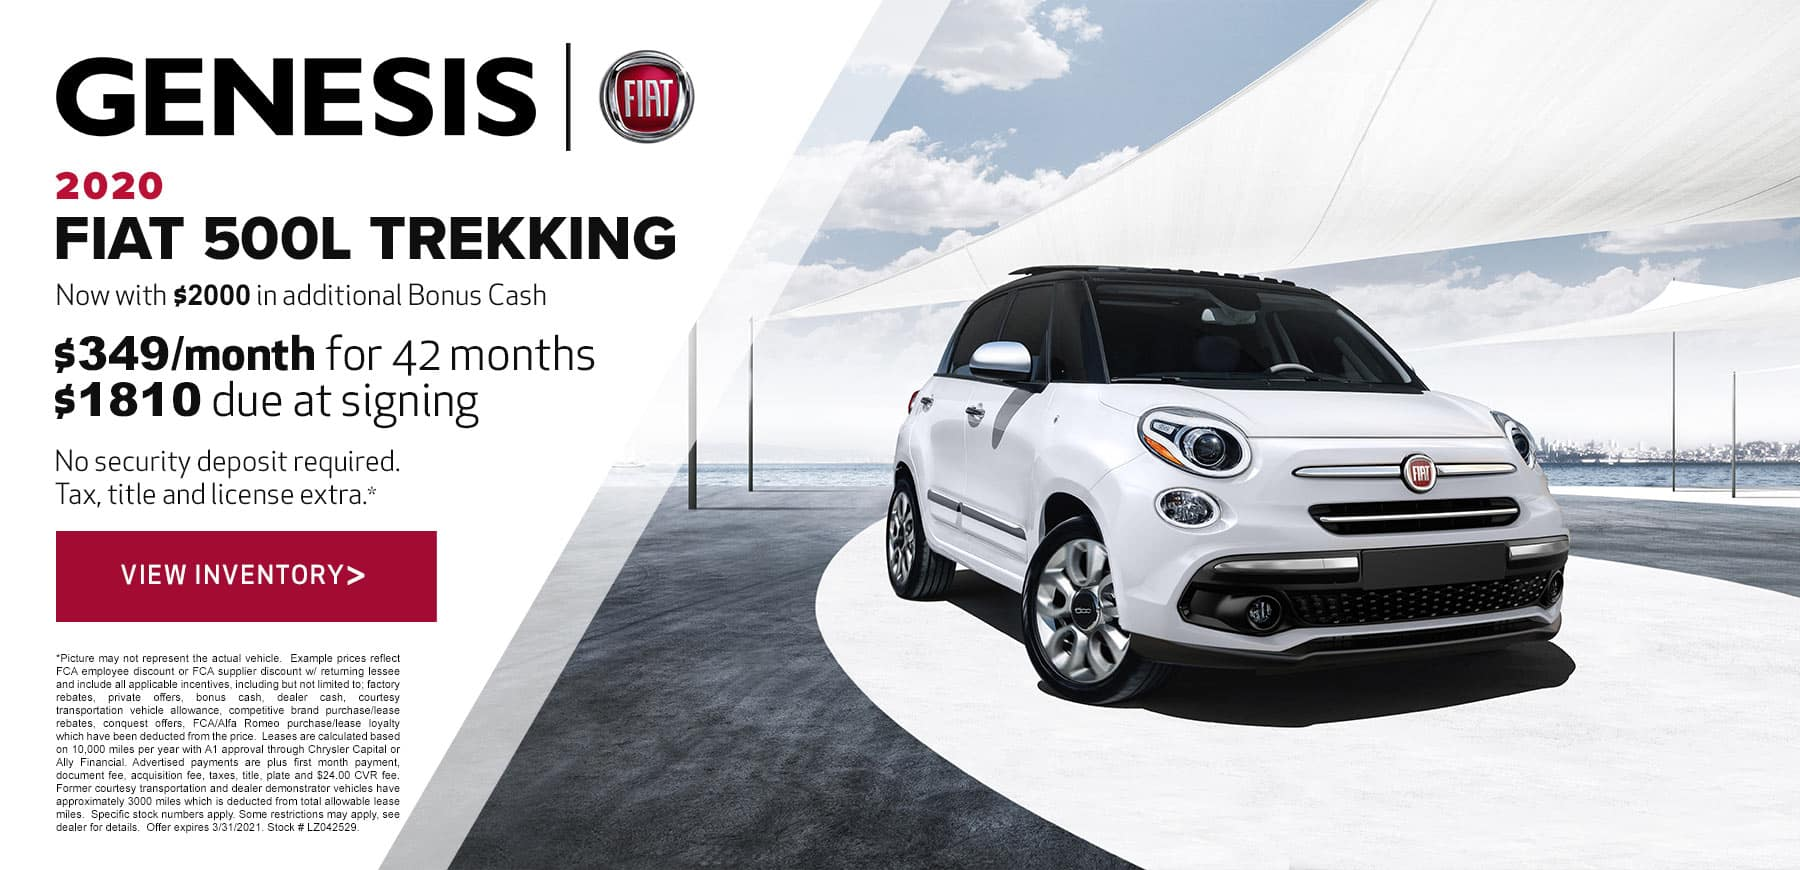 Genesis FIAT March 2021 500L Trekking Lease Offer